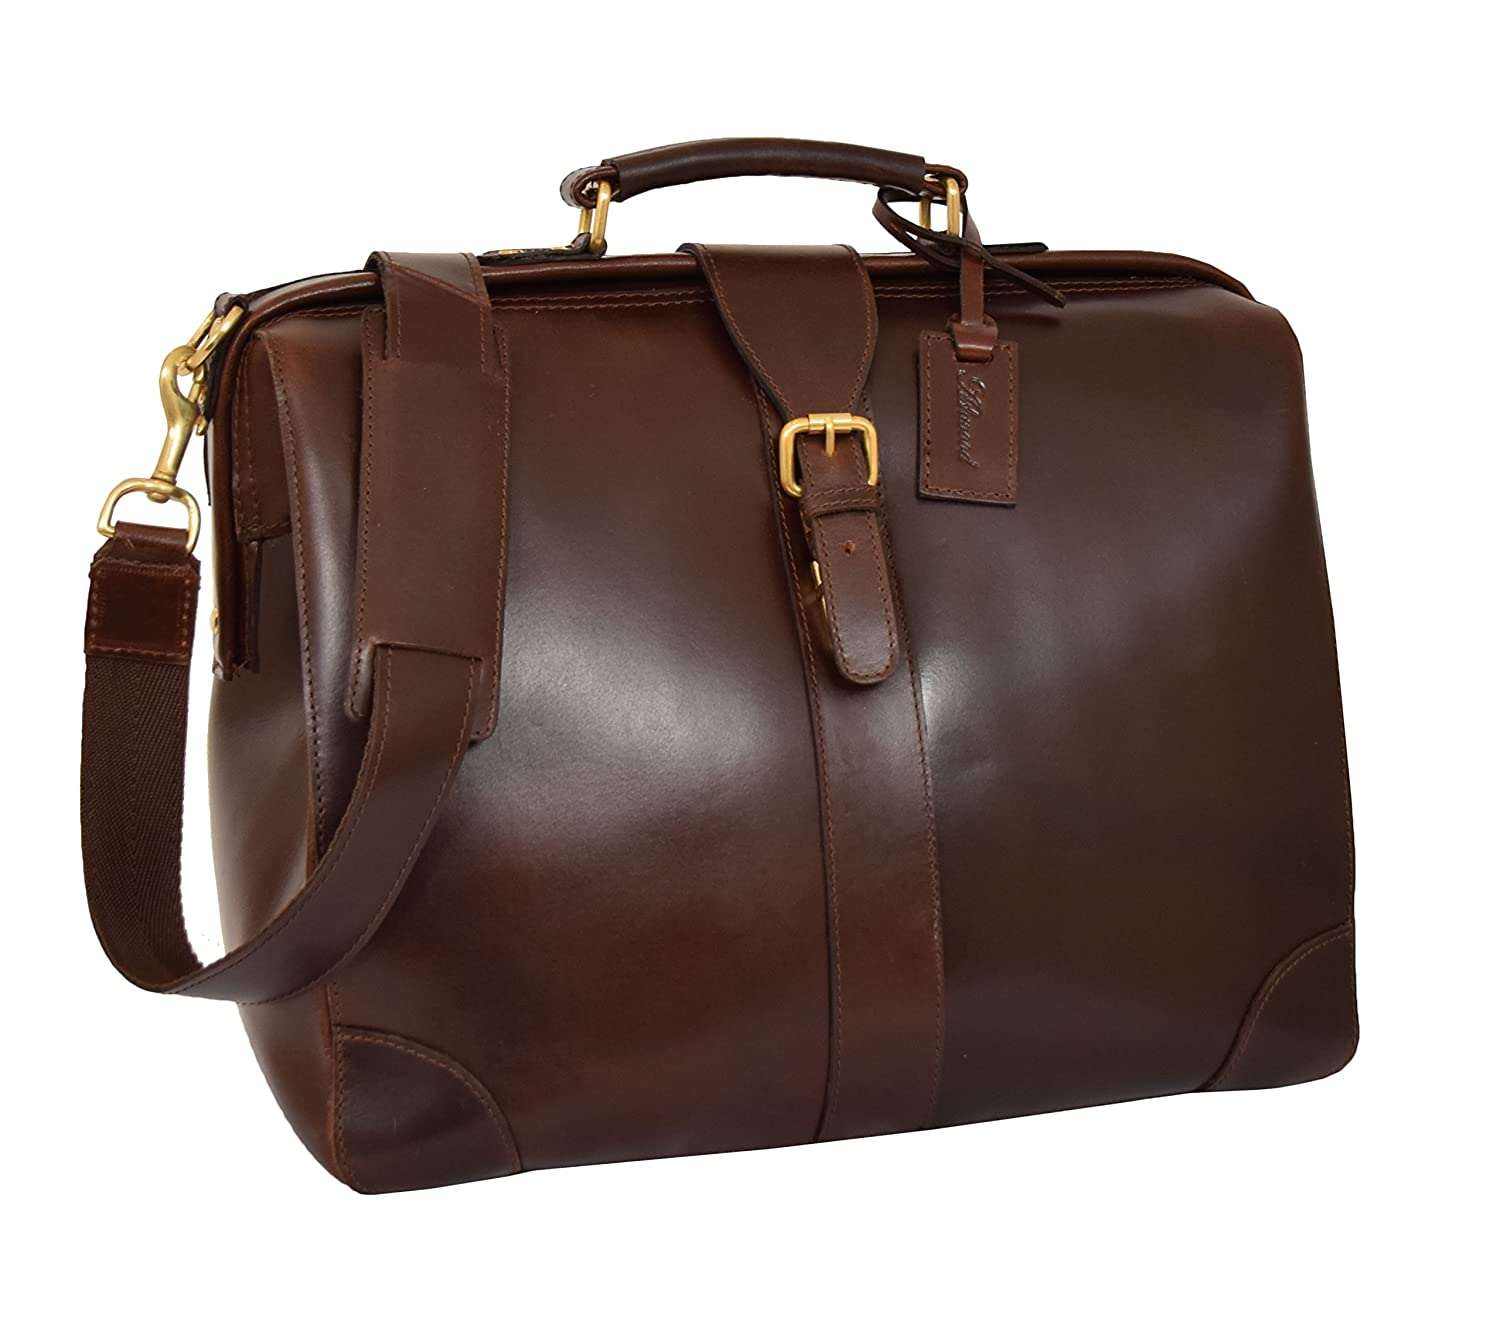 Real Leather Doctors Bag Organiser Case Cross Body Briefcase Cortex Brown Cortex.Brown